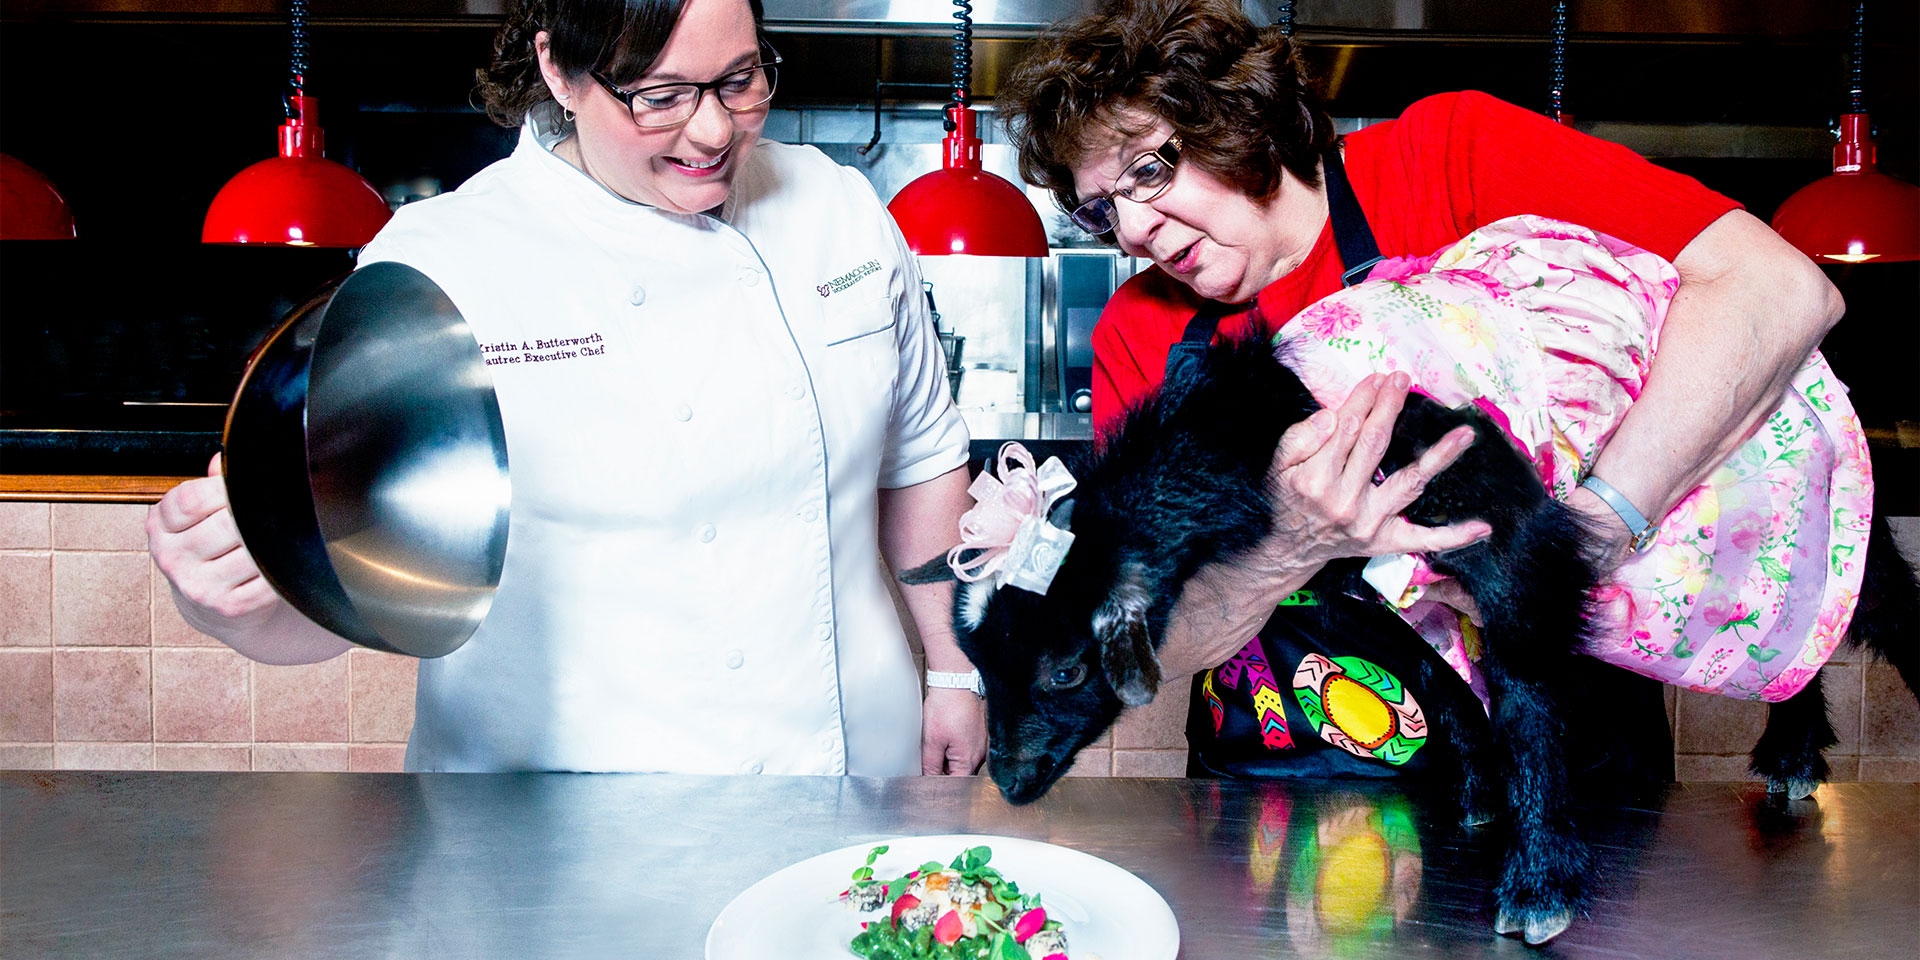 a chef revealing a plate and a woman holding a goat in a dress up to the plate